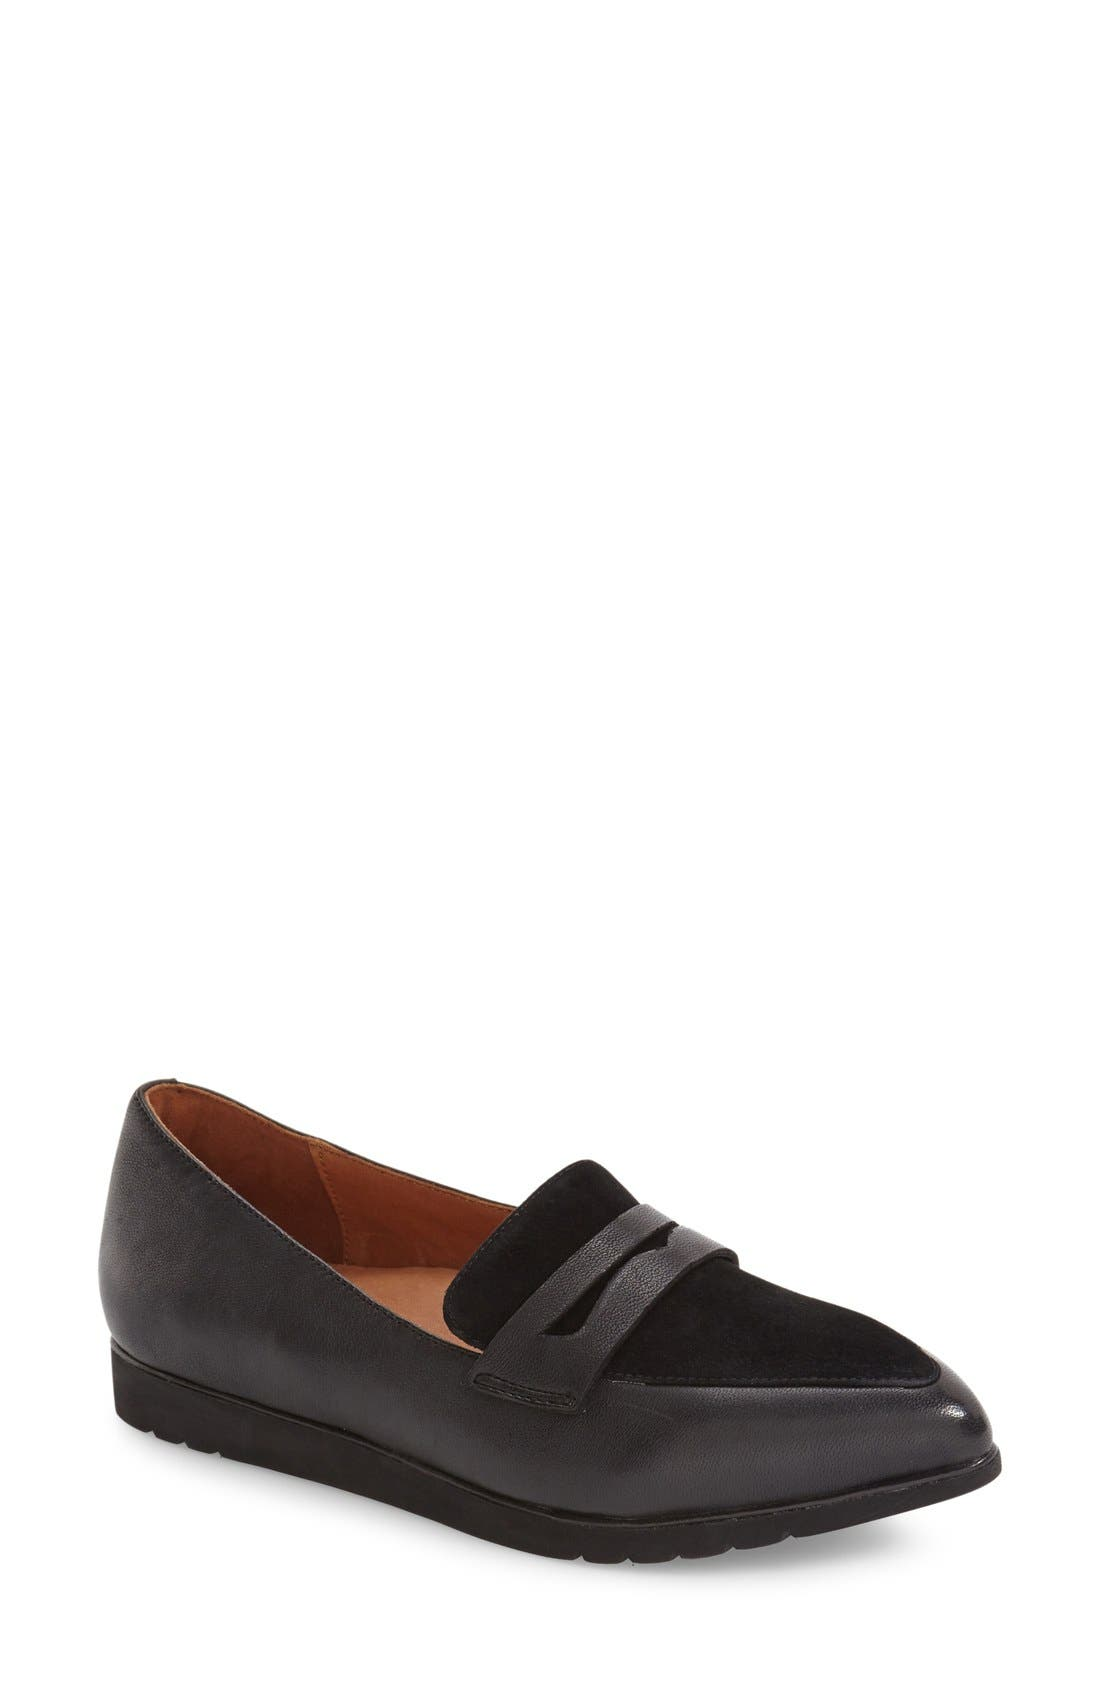 'Miamore' Pointy Toe Loafer,                             Main thumbnail 1, color,                             001